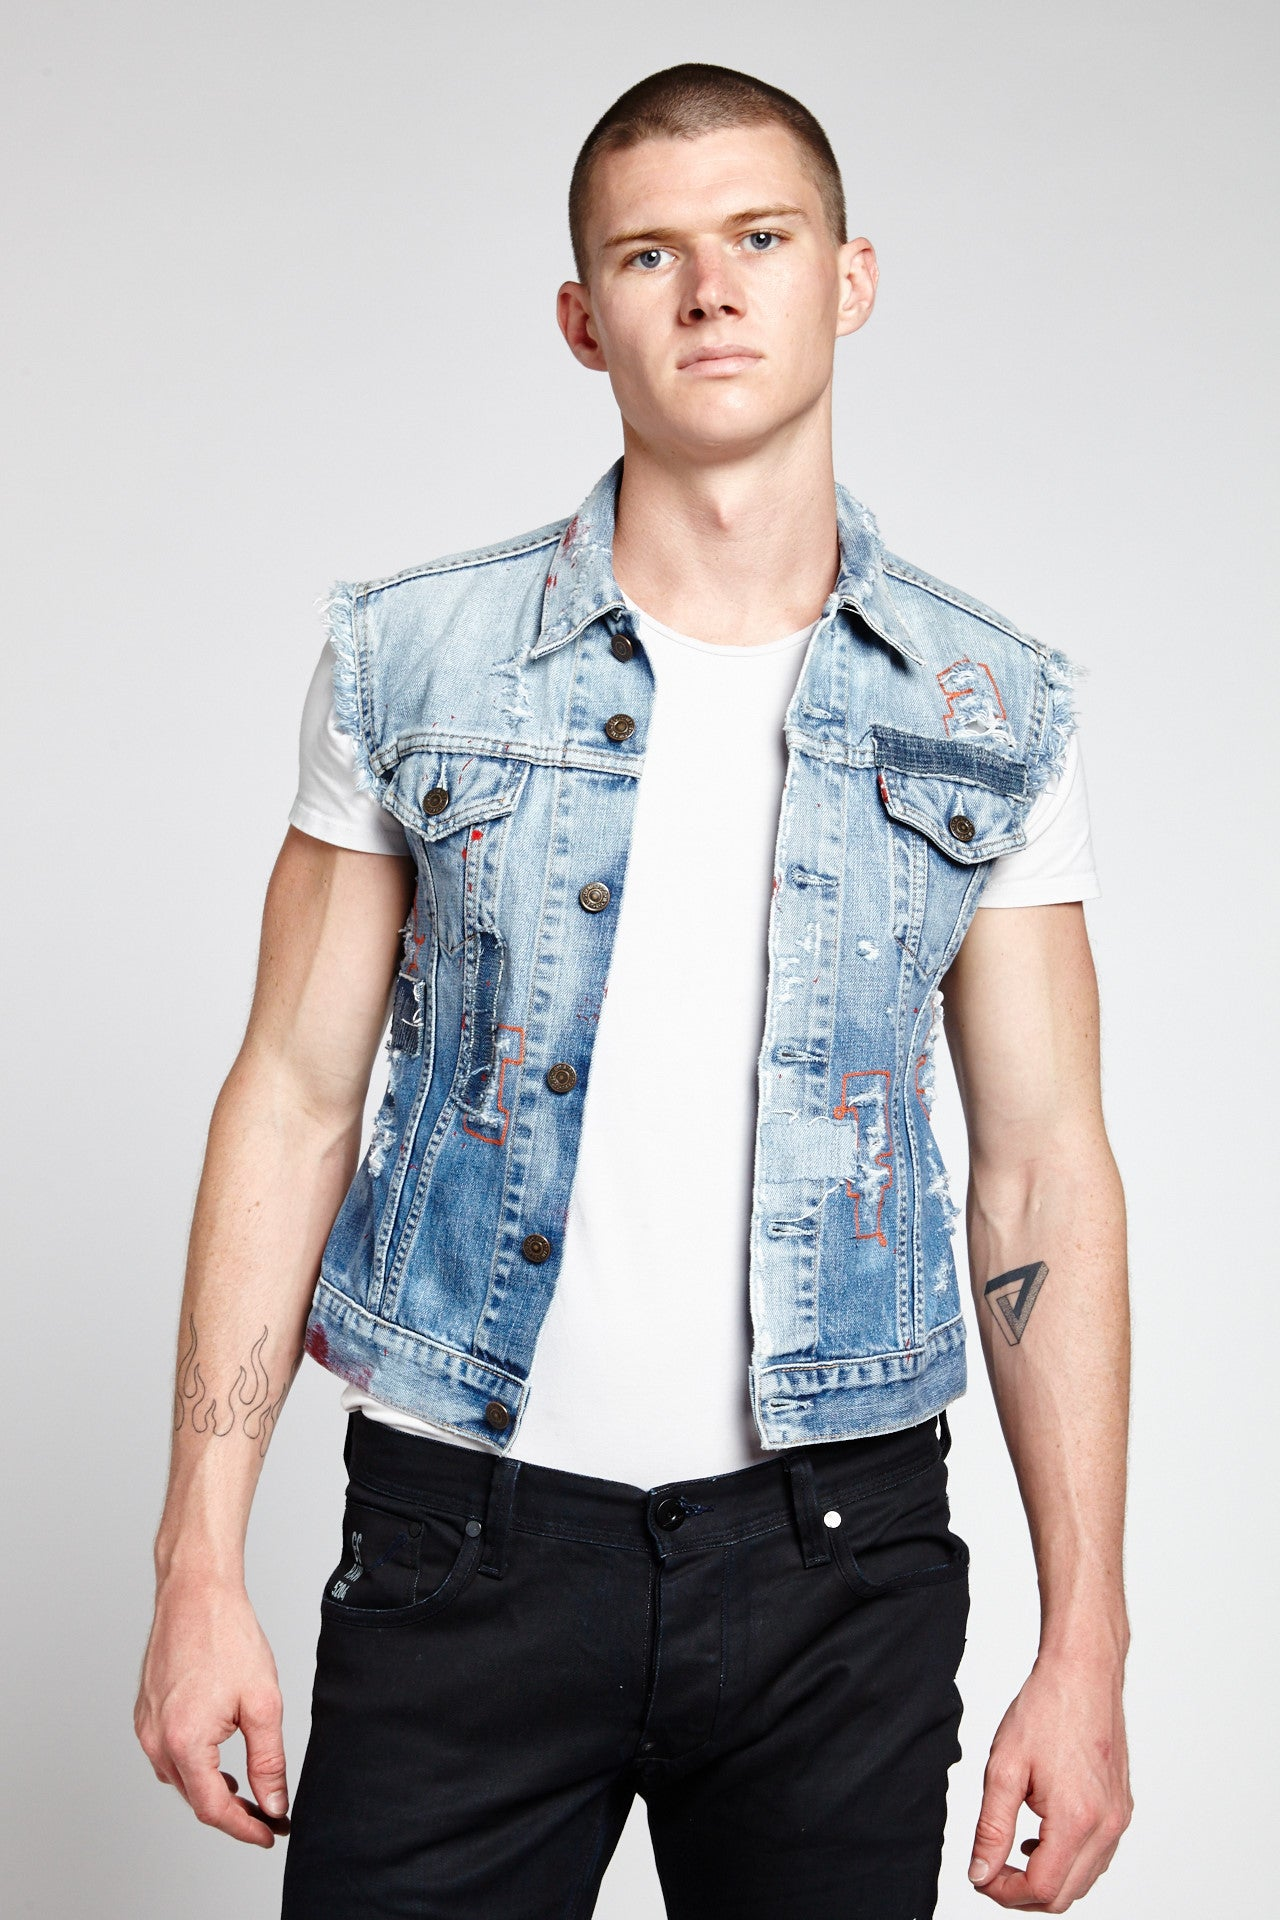 LETTERING SLEEVELESS COTTON LIGHT BLUE SMALL DENIM VEST-JACKETS-Mundane Official-S-LIGHT BLUE-Mundane Official